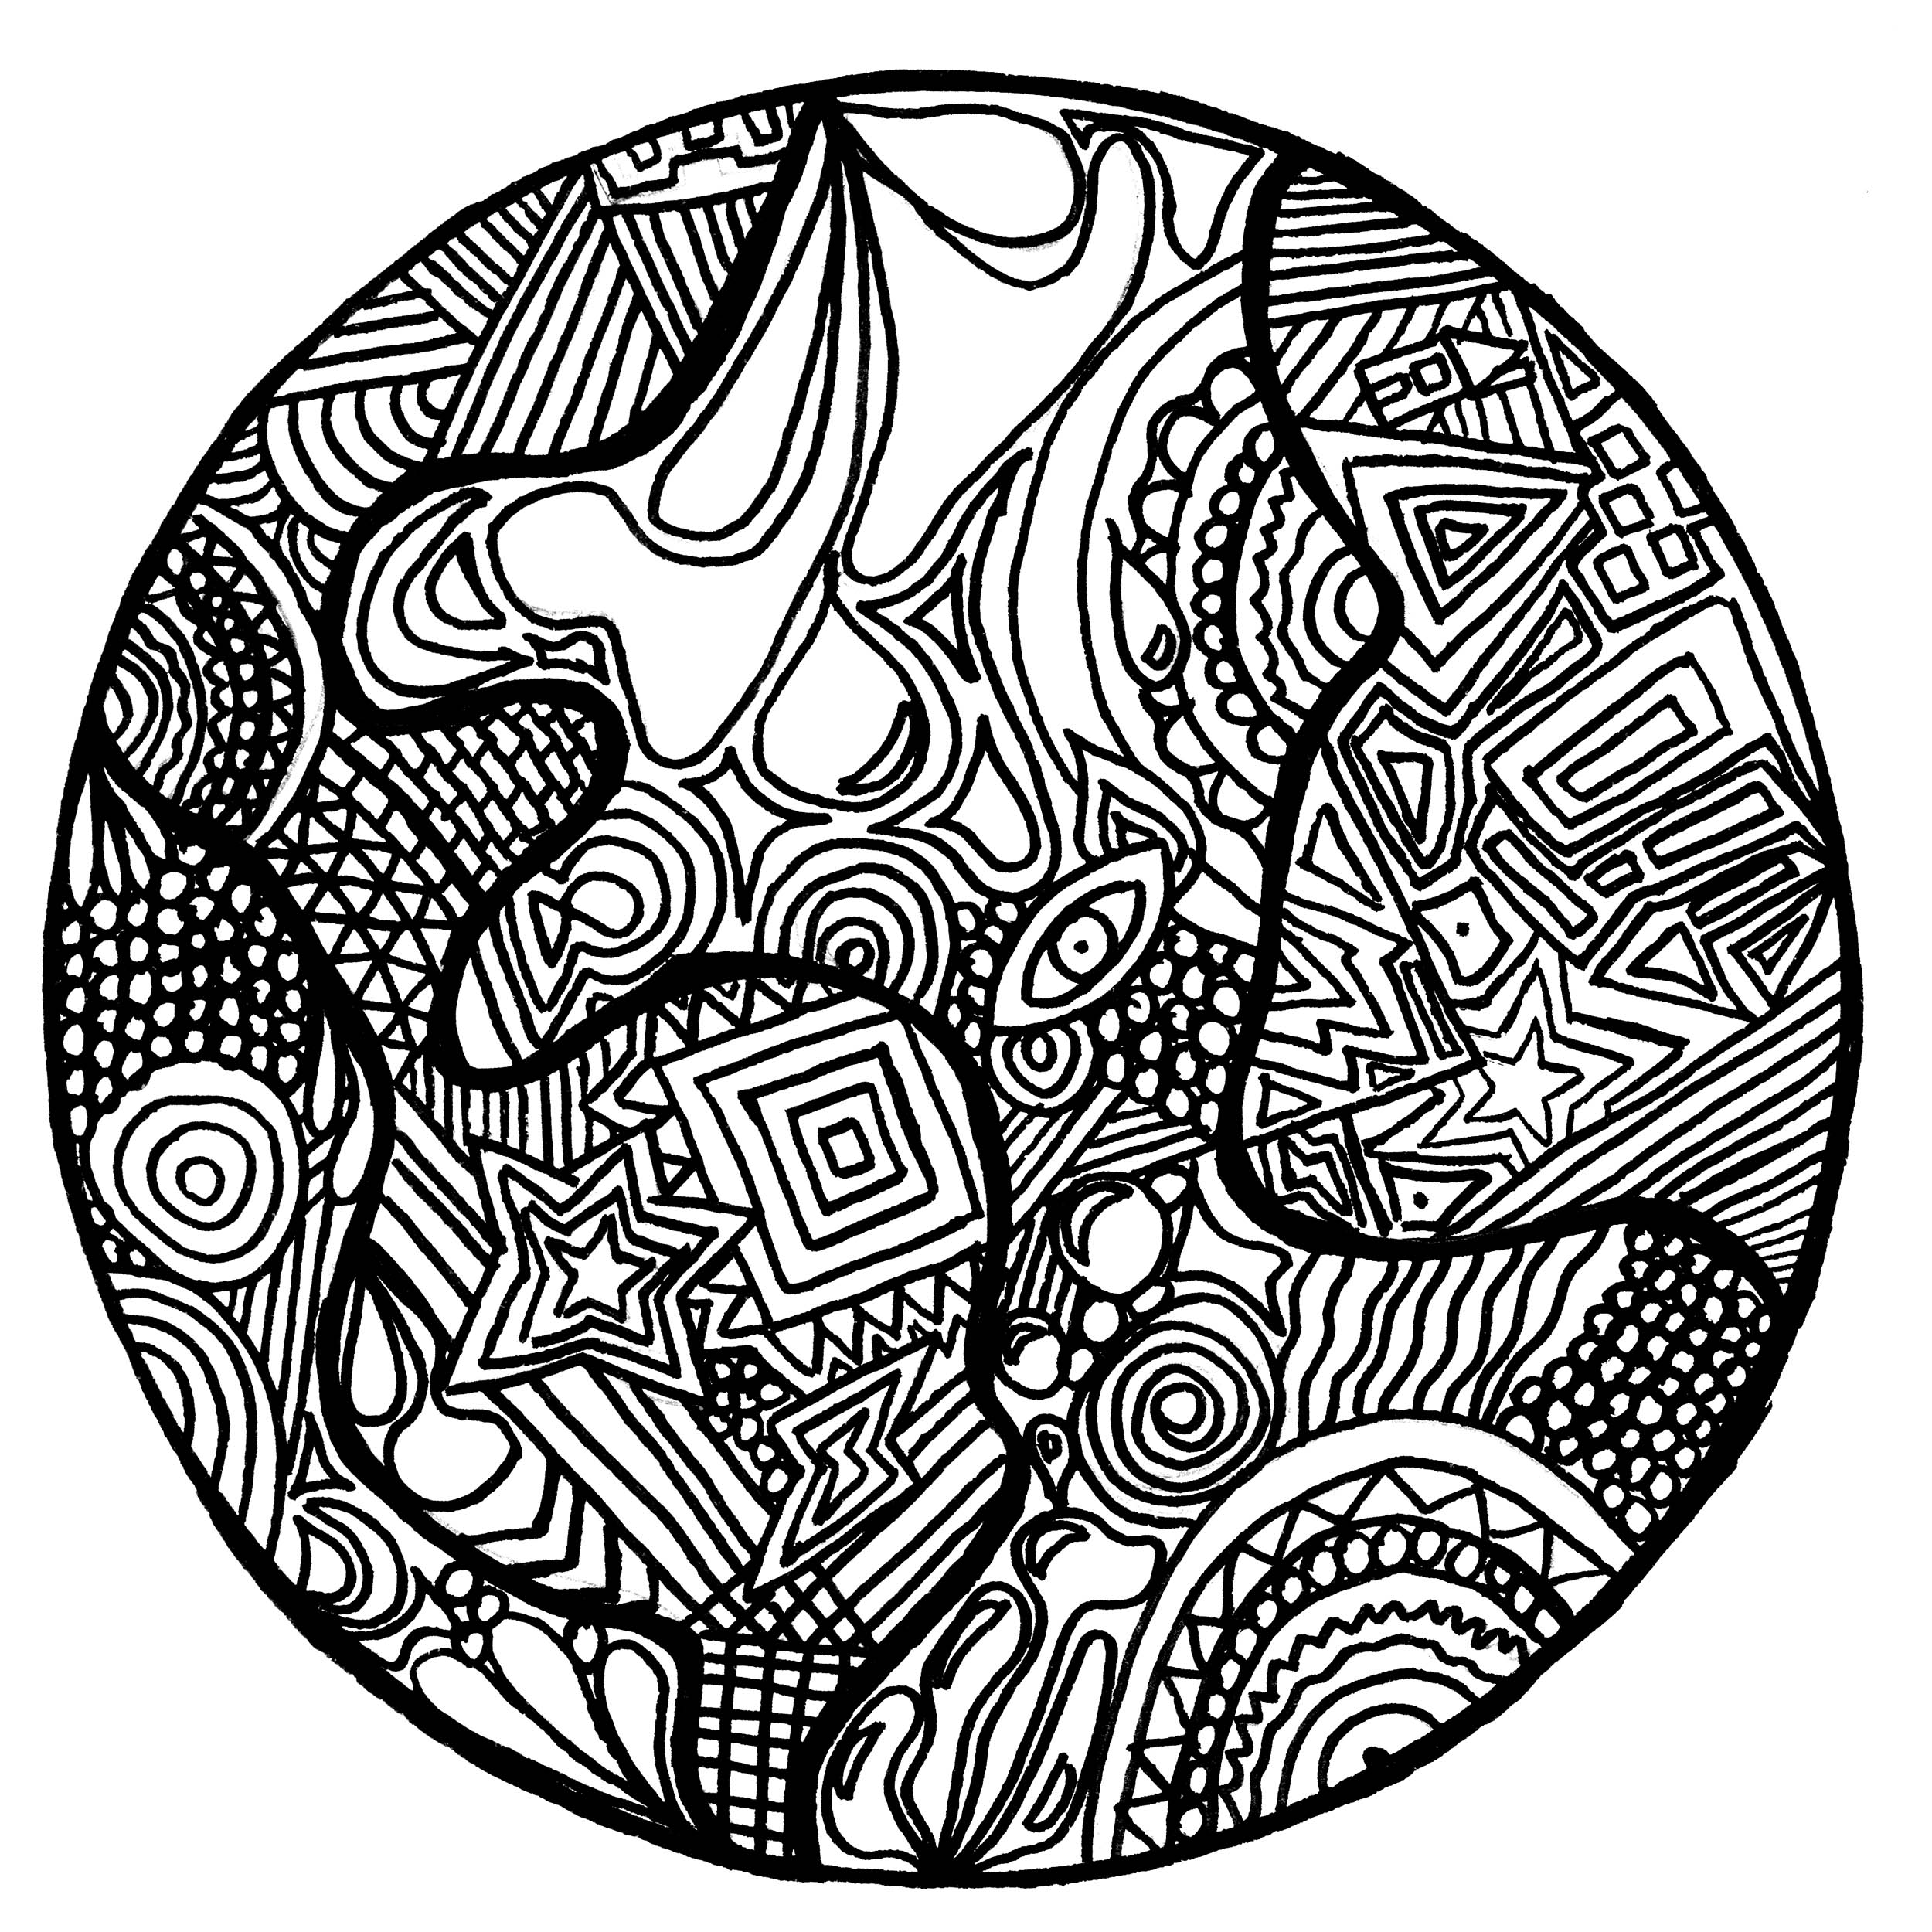 2500x2500 Zentangle To Download For Free Zentangle